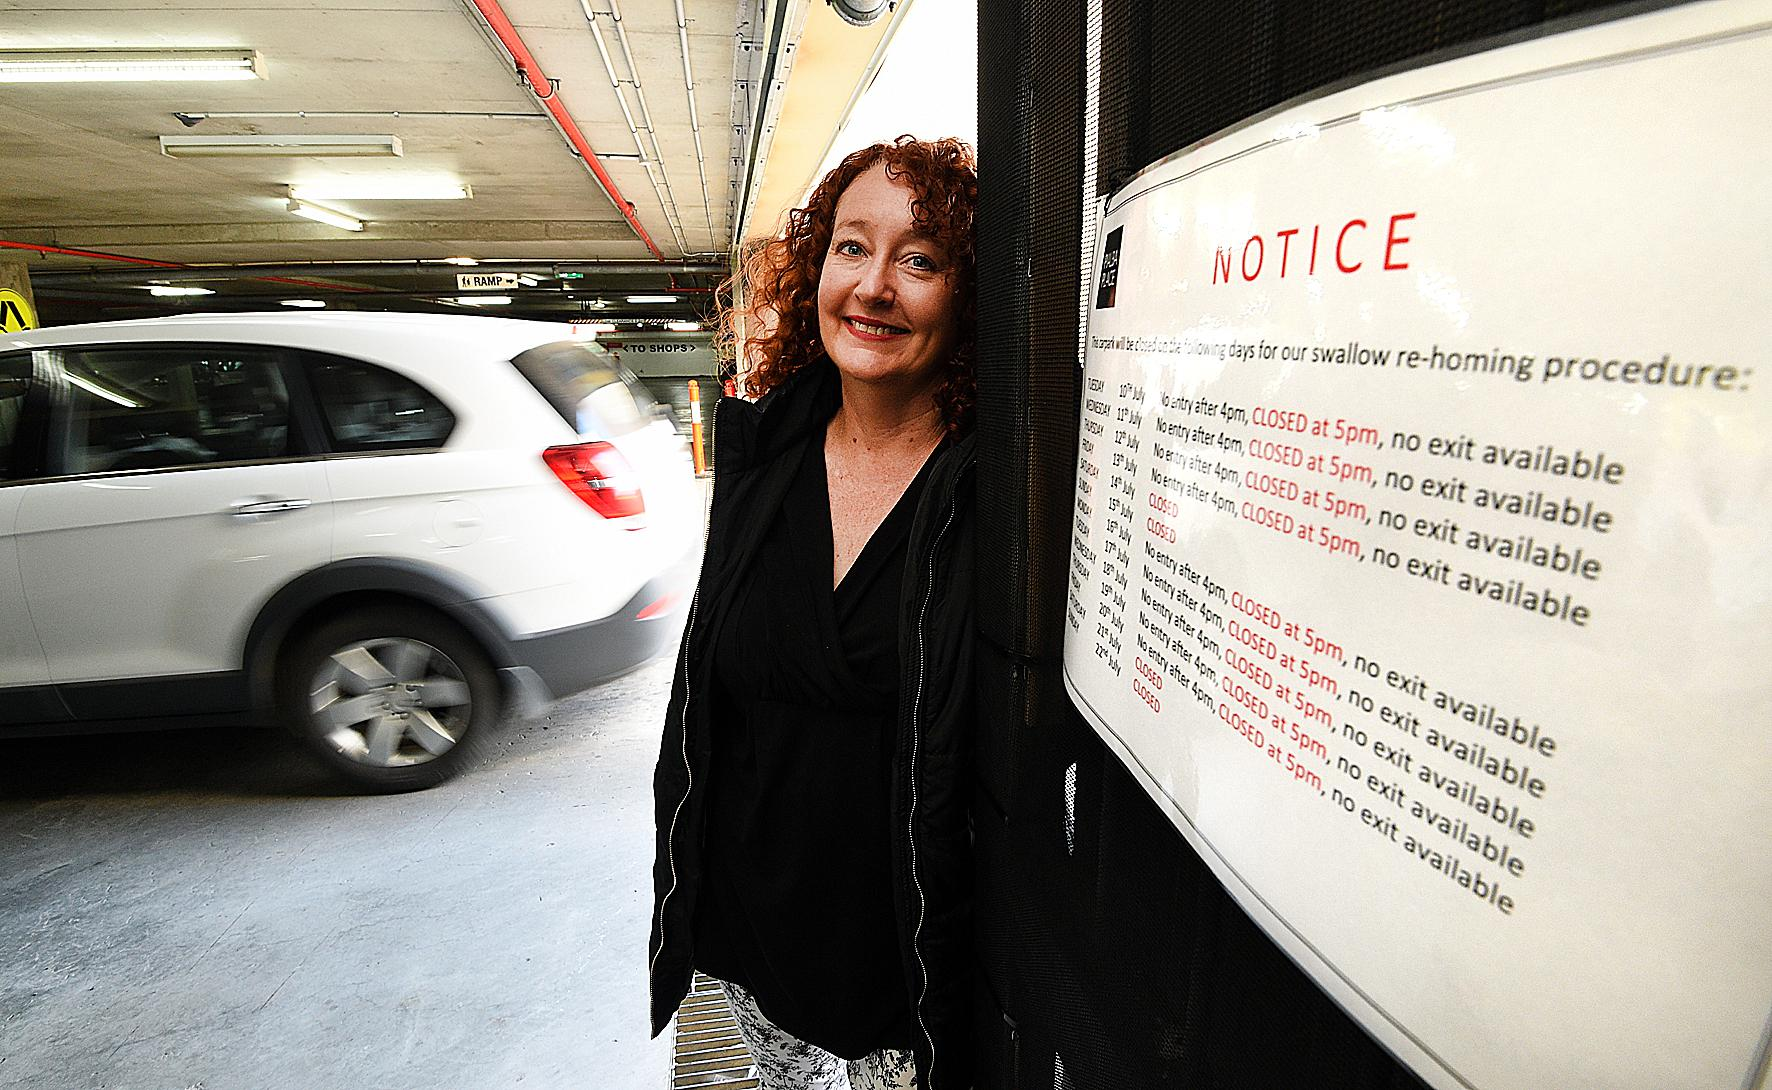 HARD TO SWALLOW: Pialba Place centre manager Rachel Mackey shows the notice advising shoppers the gate to the underground car park will close three hours earlier each day as part of the centre's swallow lock-out.